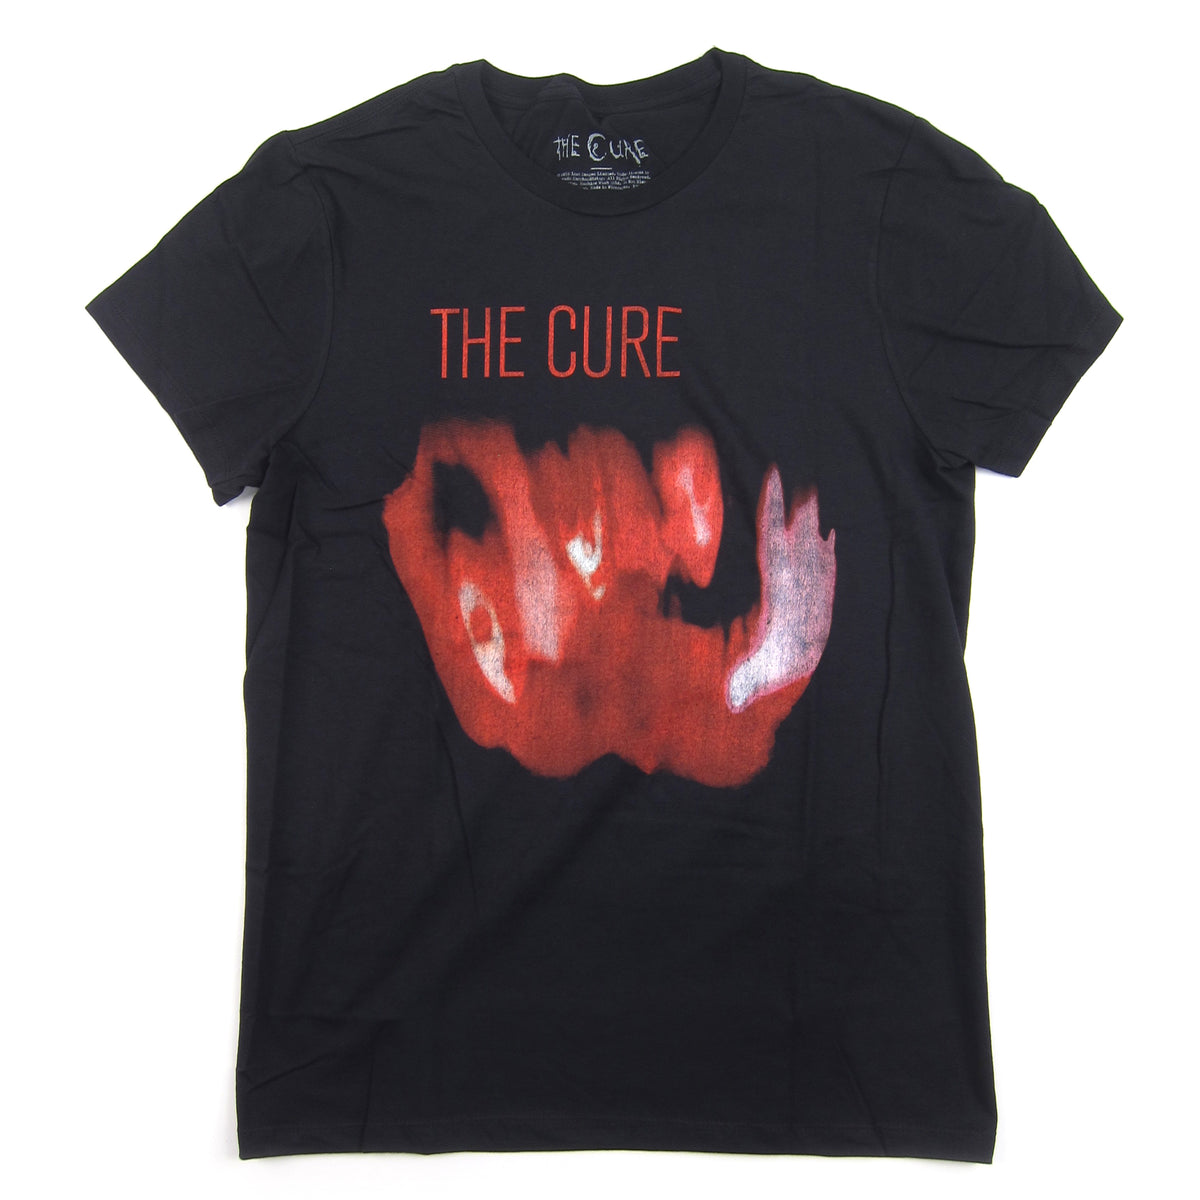 The Cure: Pornography Shirt - Black